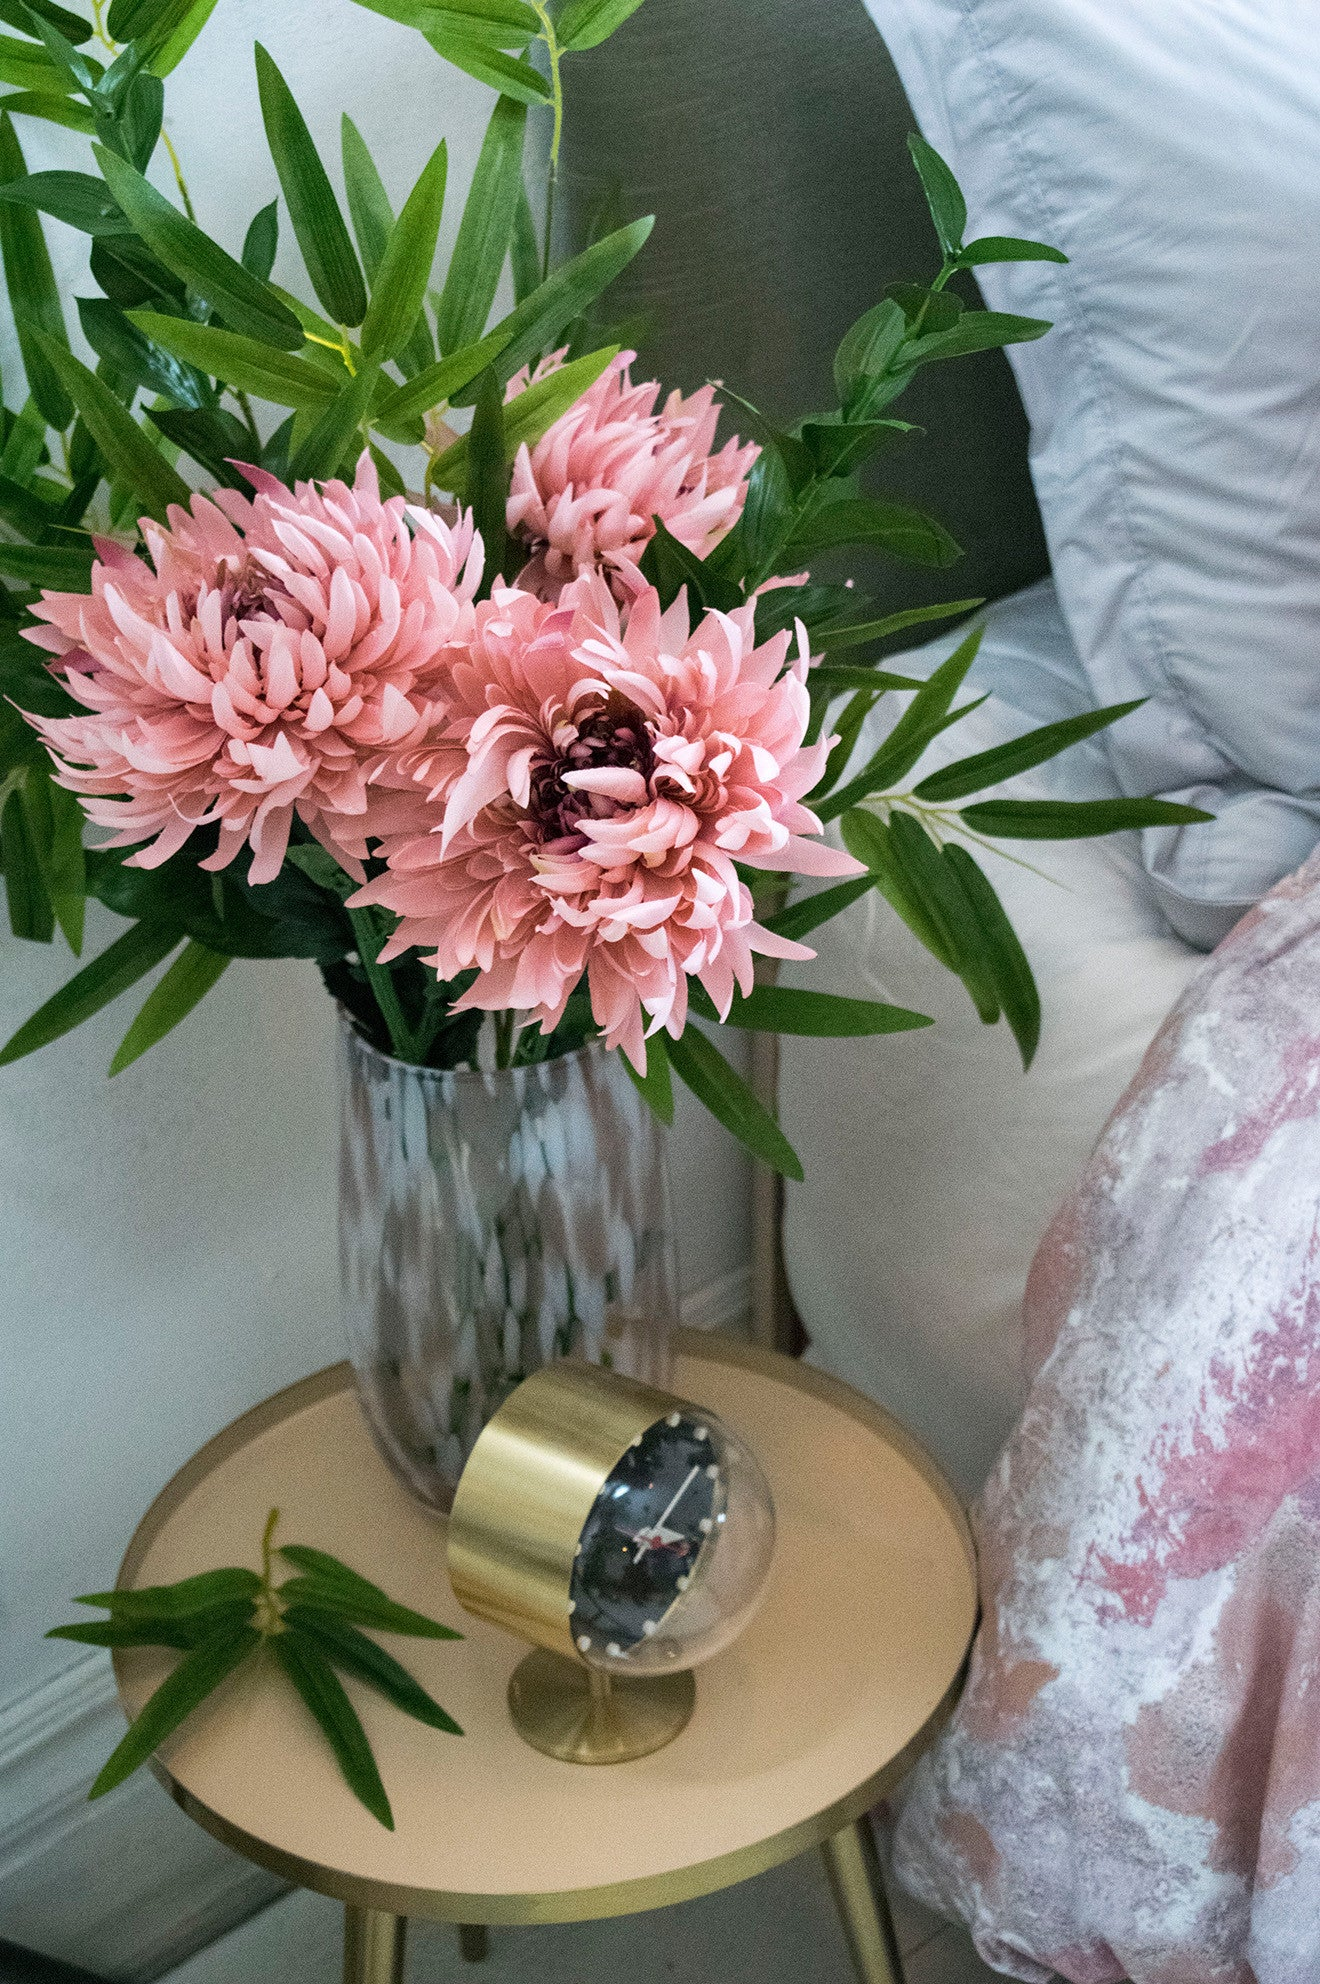 Brass bedside clock with floral and pastel bedding by Amara